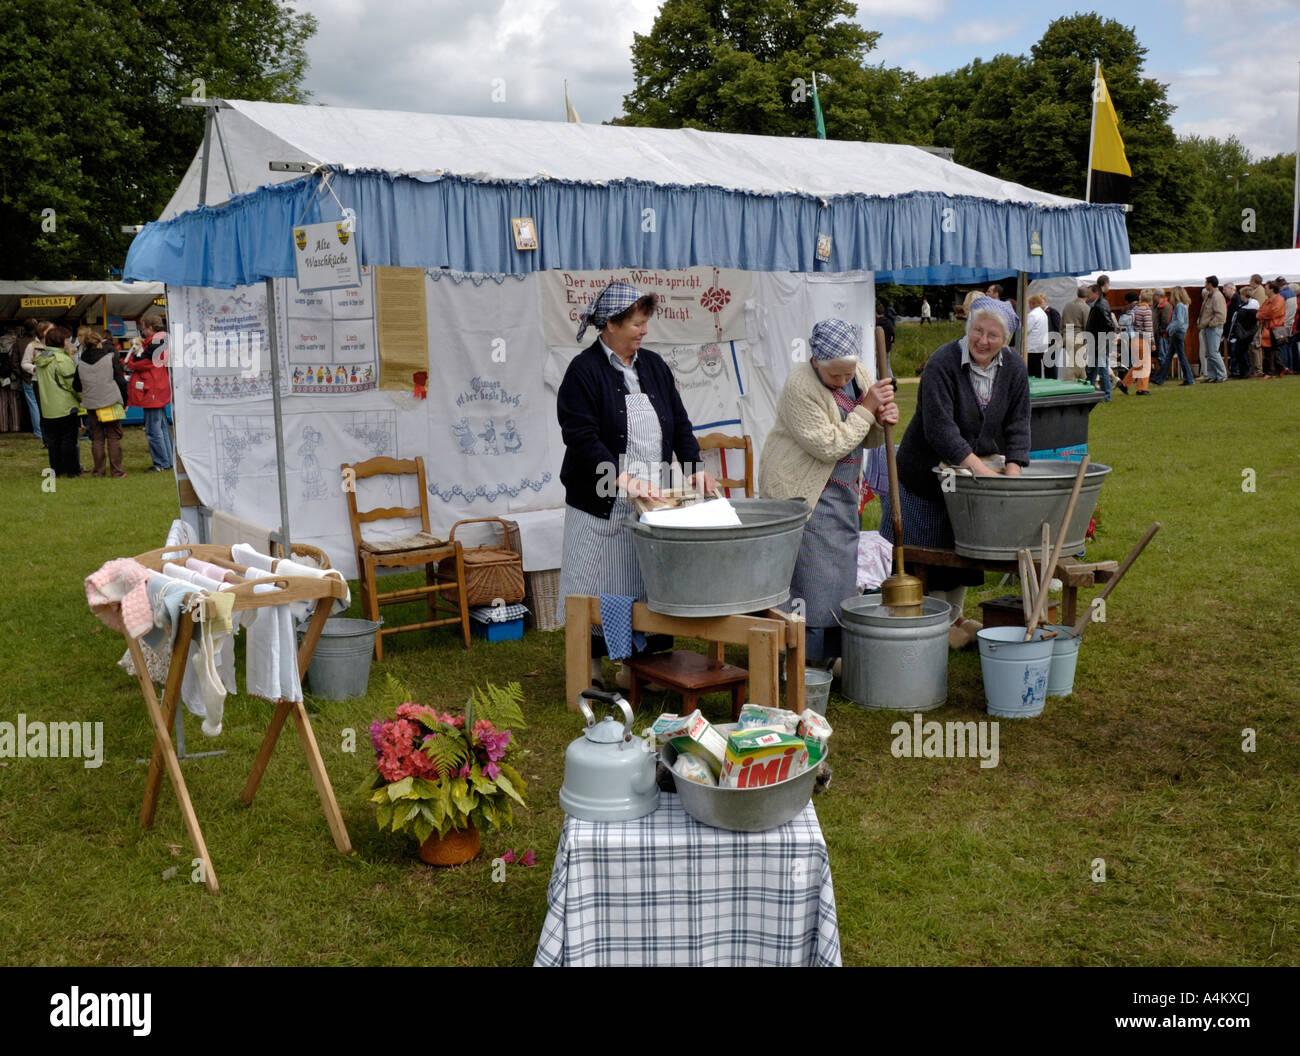 Krefeld, Germany. Flachsmarkt at Burg Linn, 2006. Washing by hand demonstration. - Stock Image